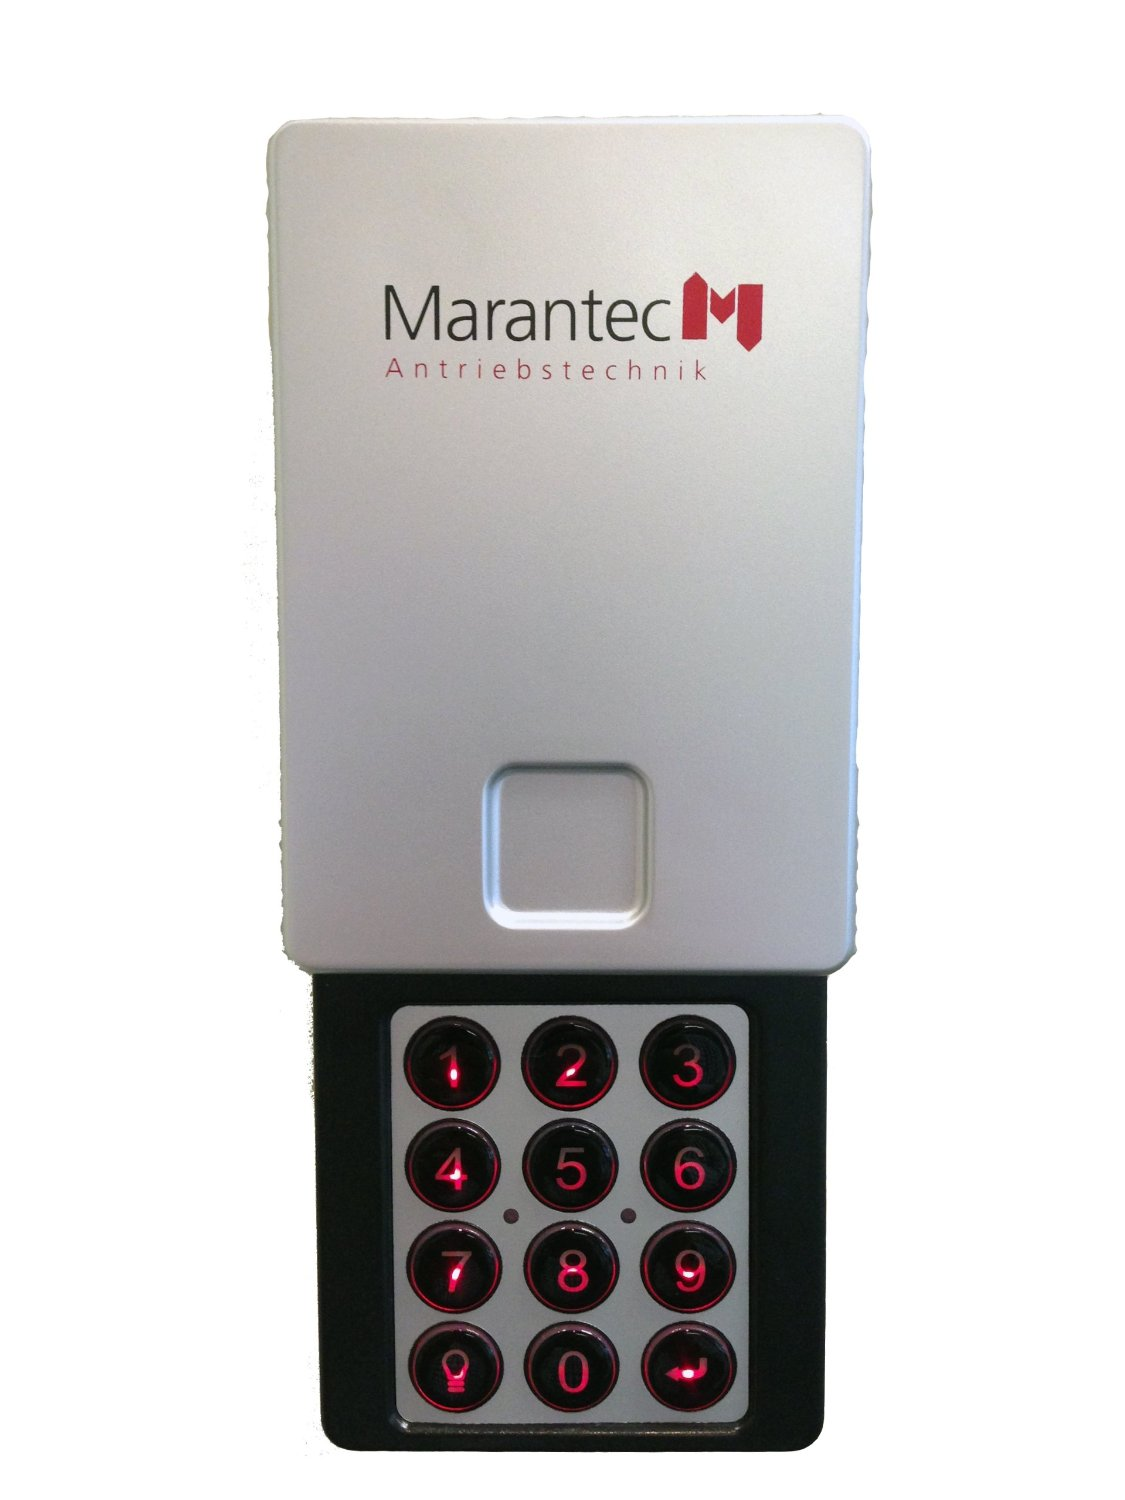 Lifestyle Garage Door Screen Reviews Marantec M12-631 Wireless Keypad Entry | National Overhead